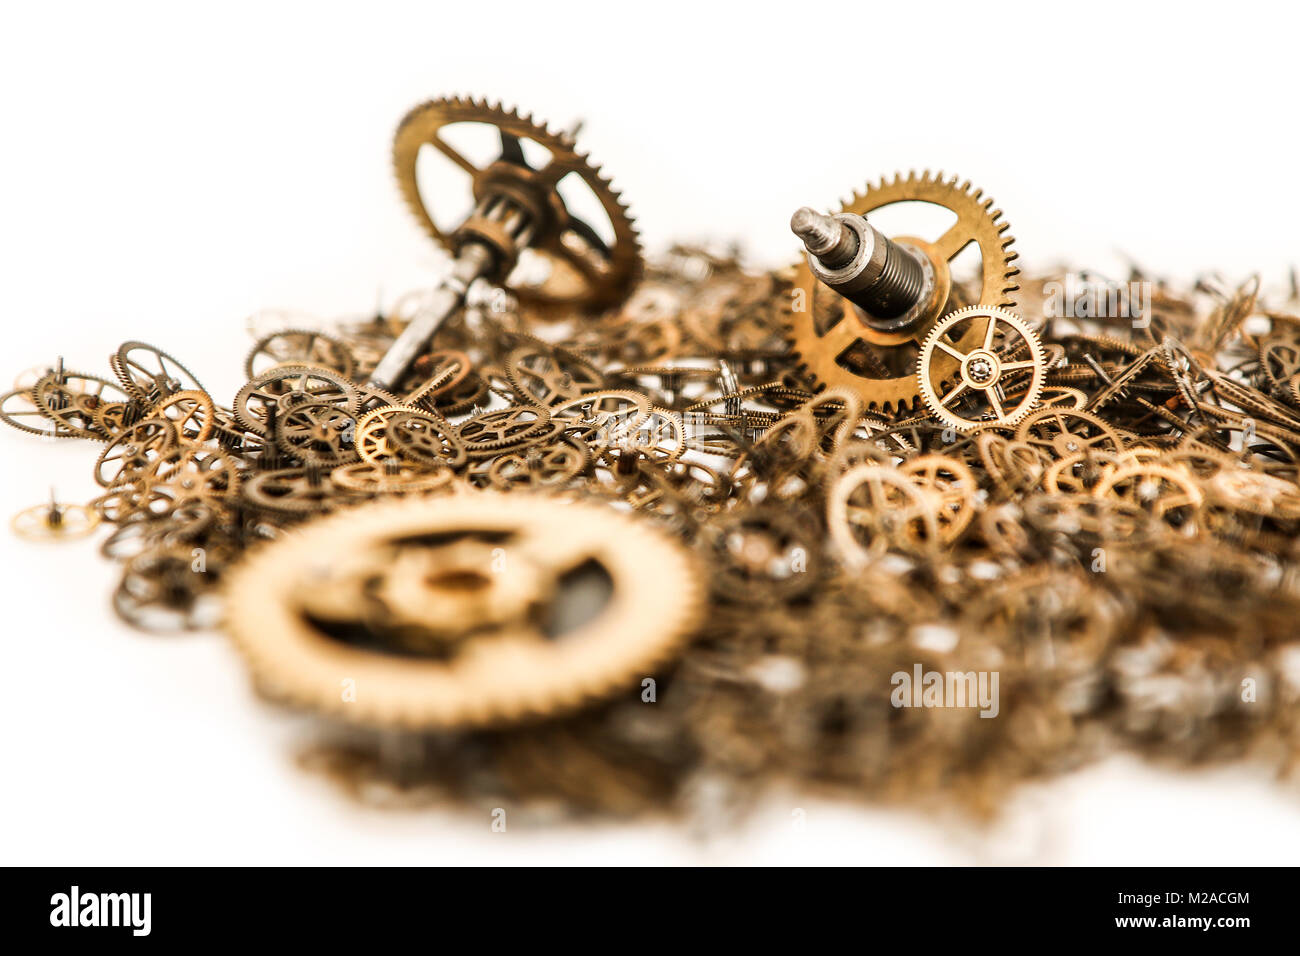 A picture of a small batch of cogwheels on a white background. - Stock Image